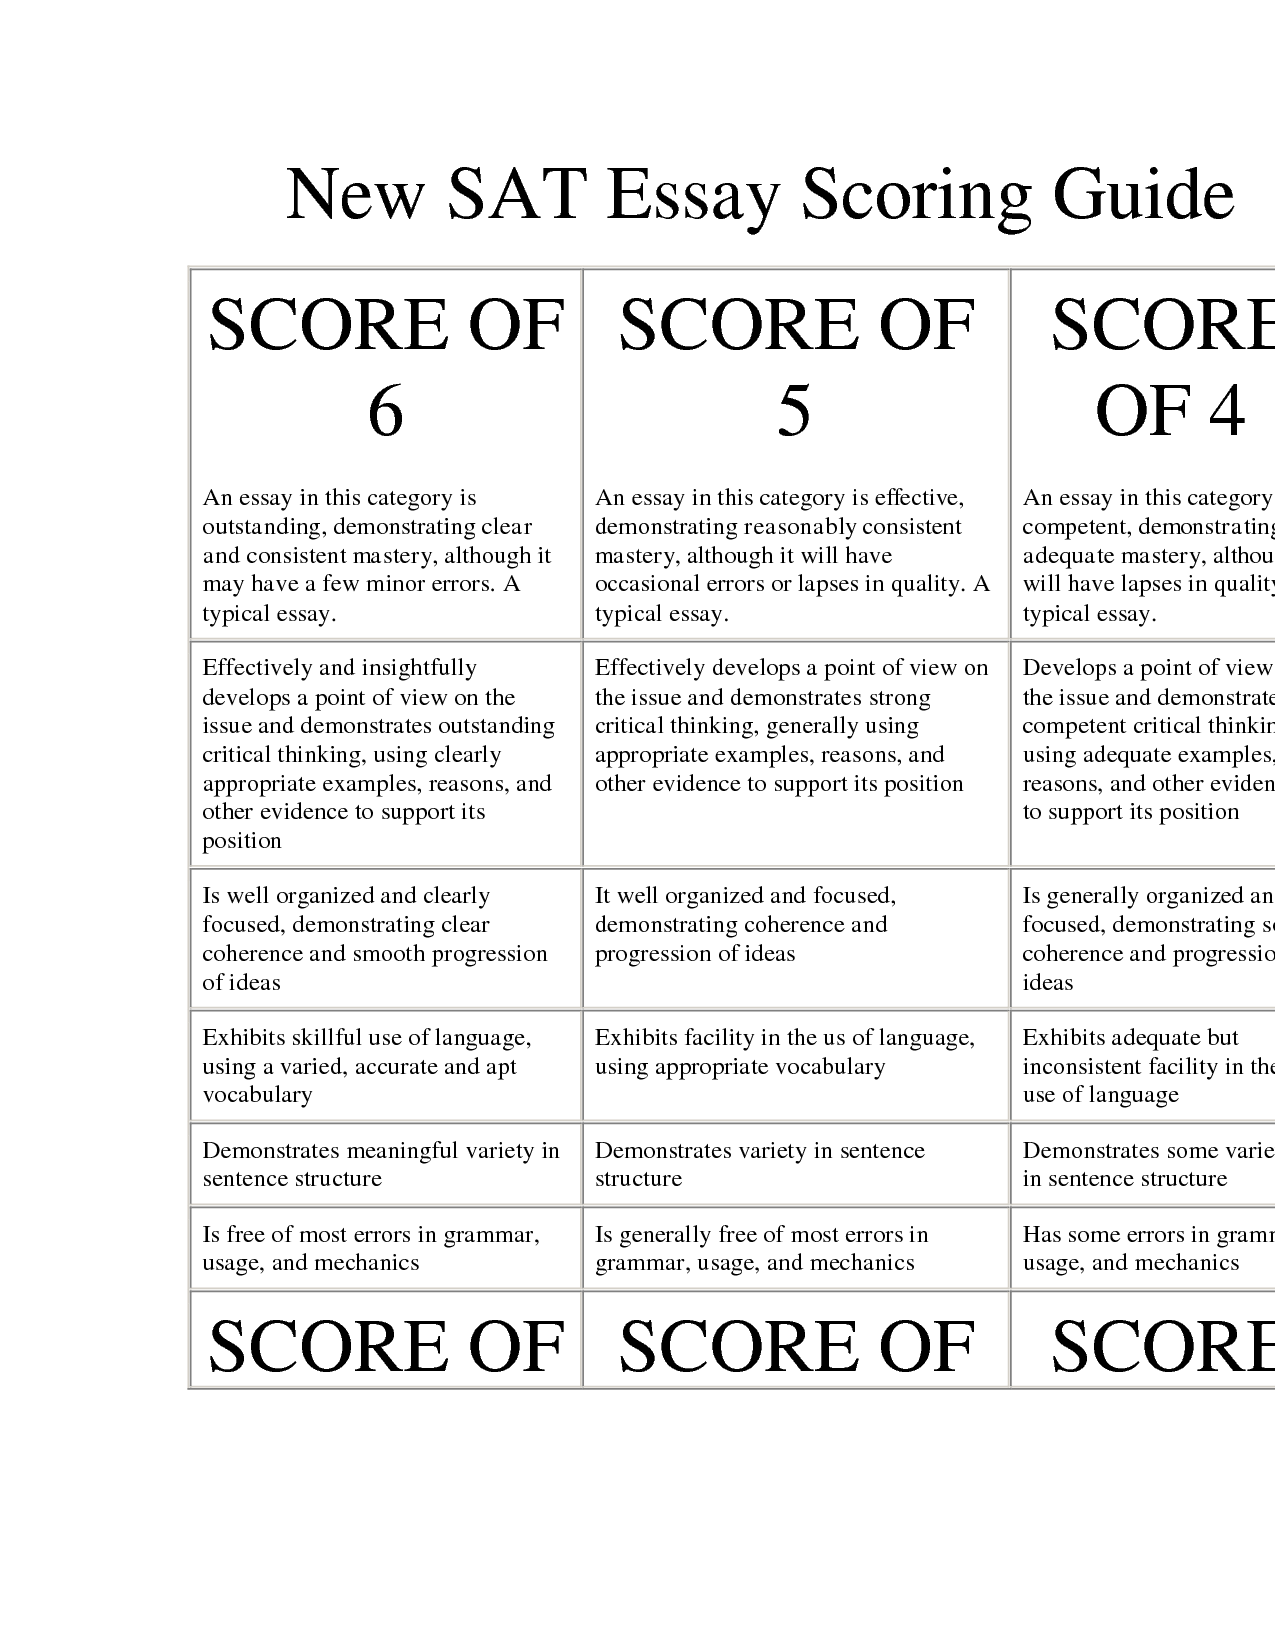 sat practice essay scoring The sat ® your name (print)  — an off-topic essay will not be practice: follow this link for more information on scoring your test: wwwsatorg/scoring.